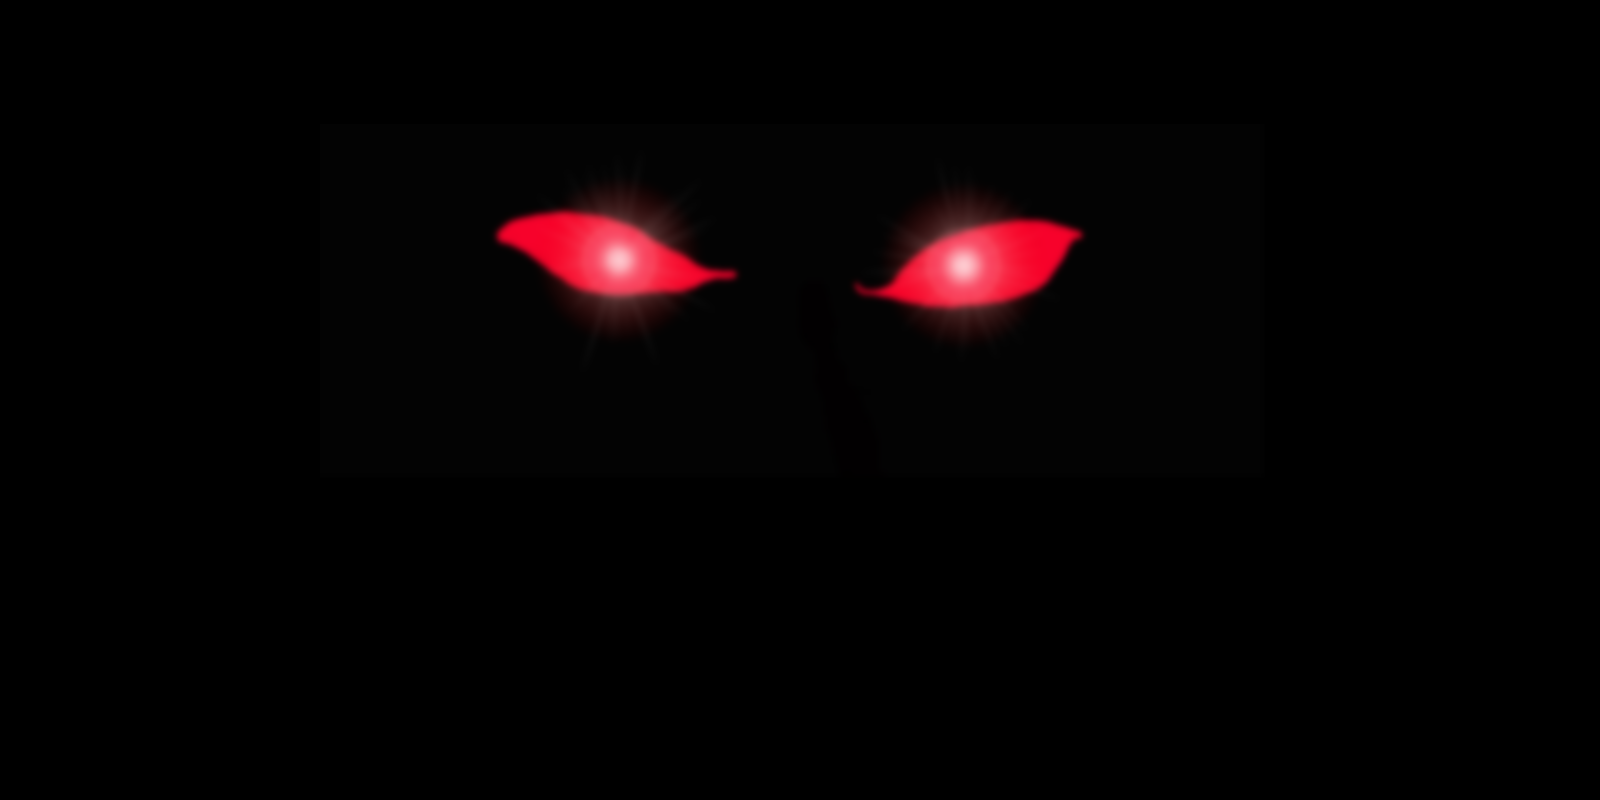 Glowing Red Eyes Png, png collections at sccpre.cat.